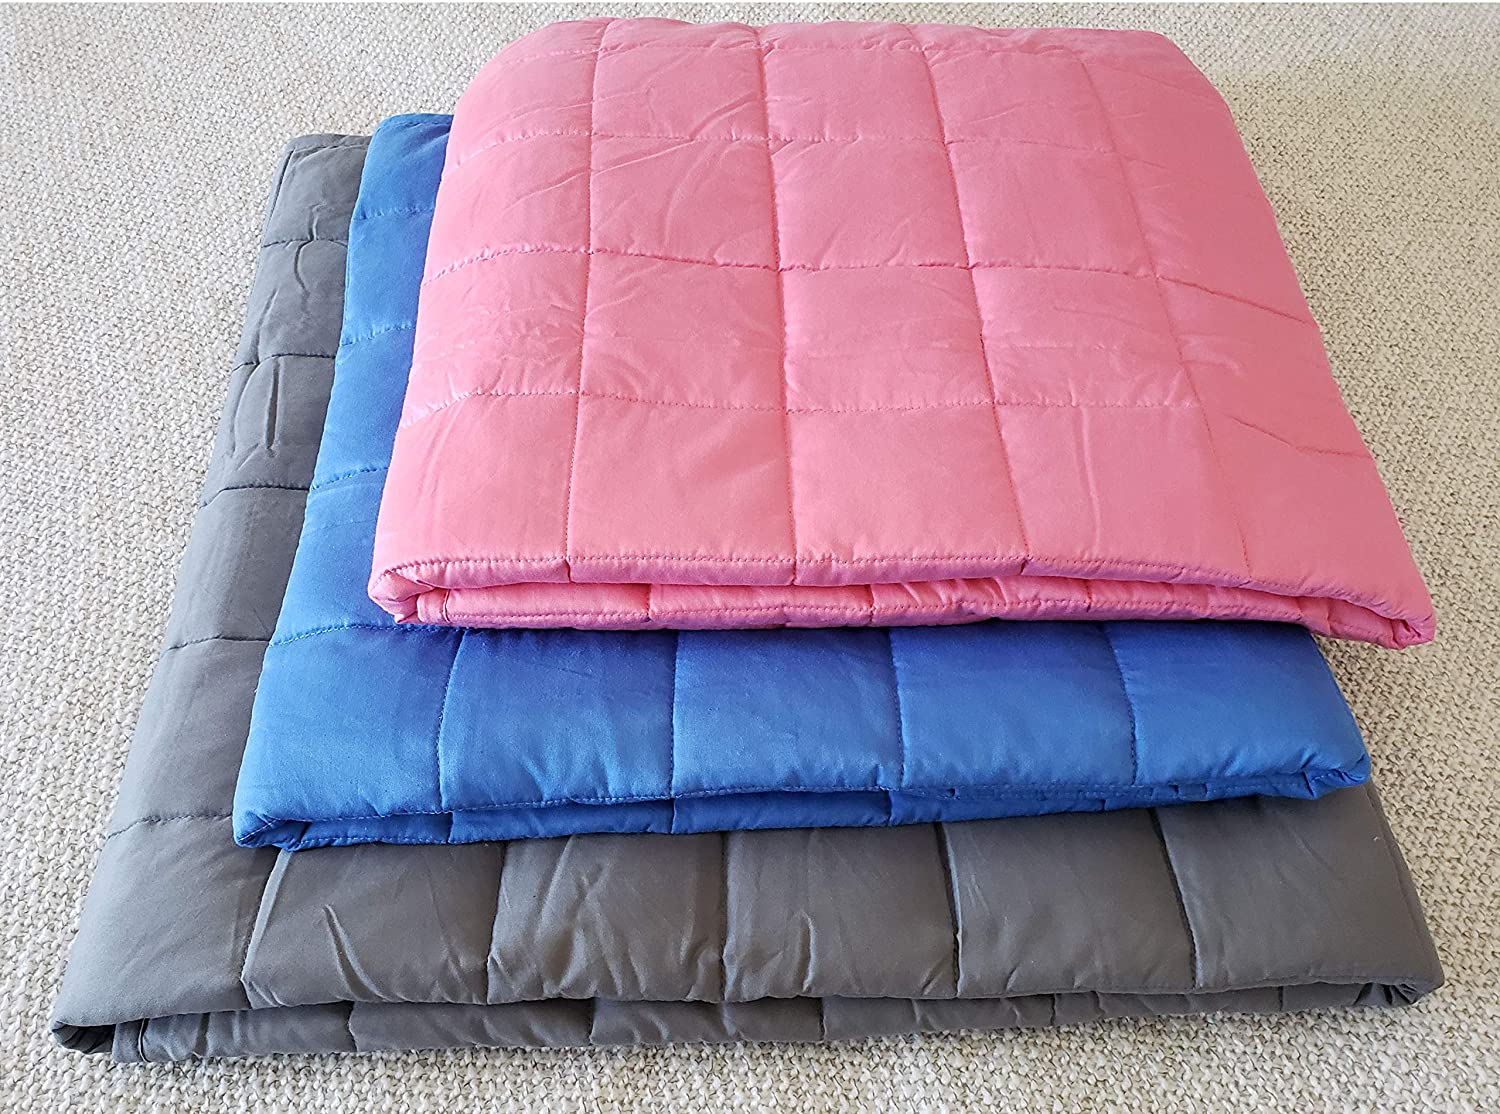 TheraLux Premium Weighted Blanket 41x 60, 10lbs, Pink Cotton with Glass Beads